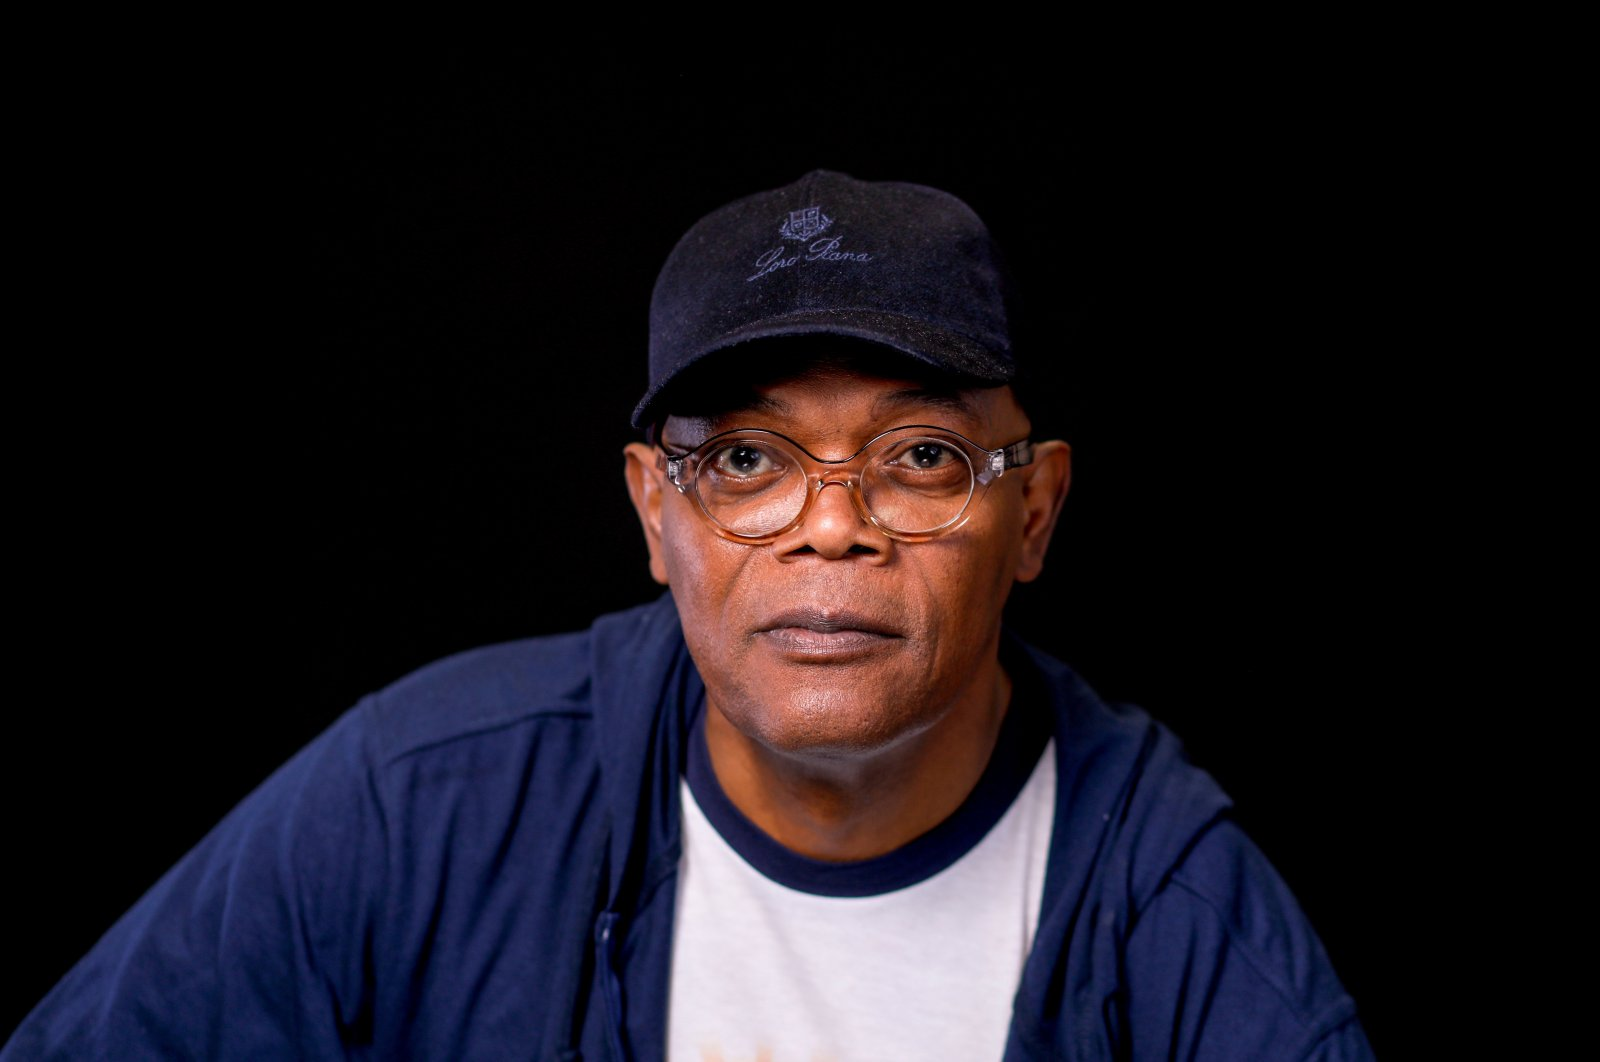 Actor Samuel L. Jackson poses for a portrait for Captain Marvel in Beverly Hills, California, U.S. Feb. 22, 2019. (REUTERS Photo)